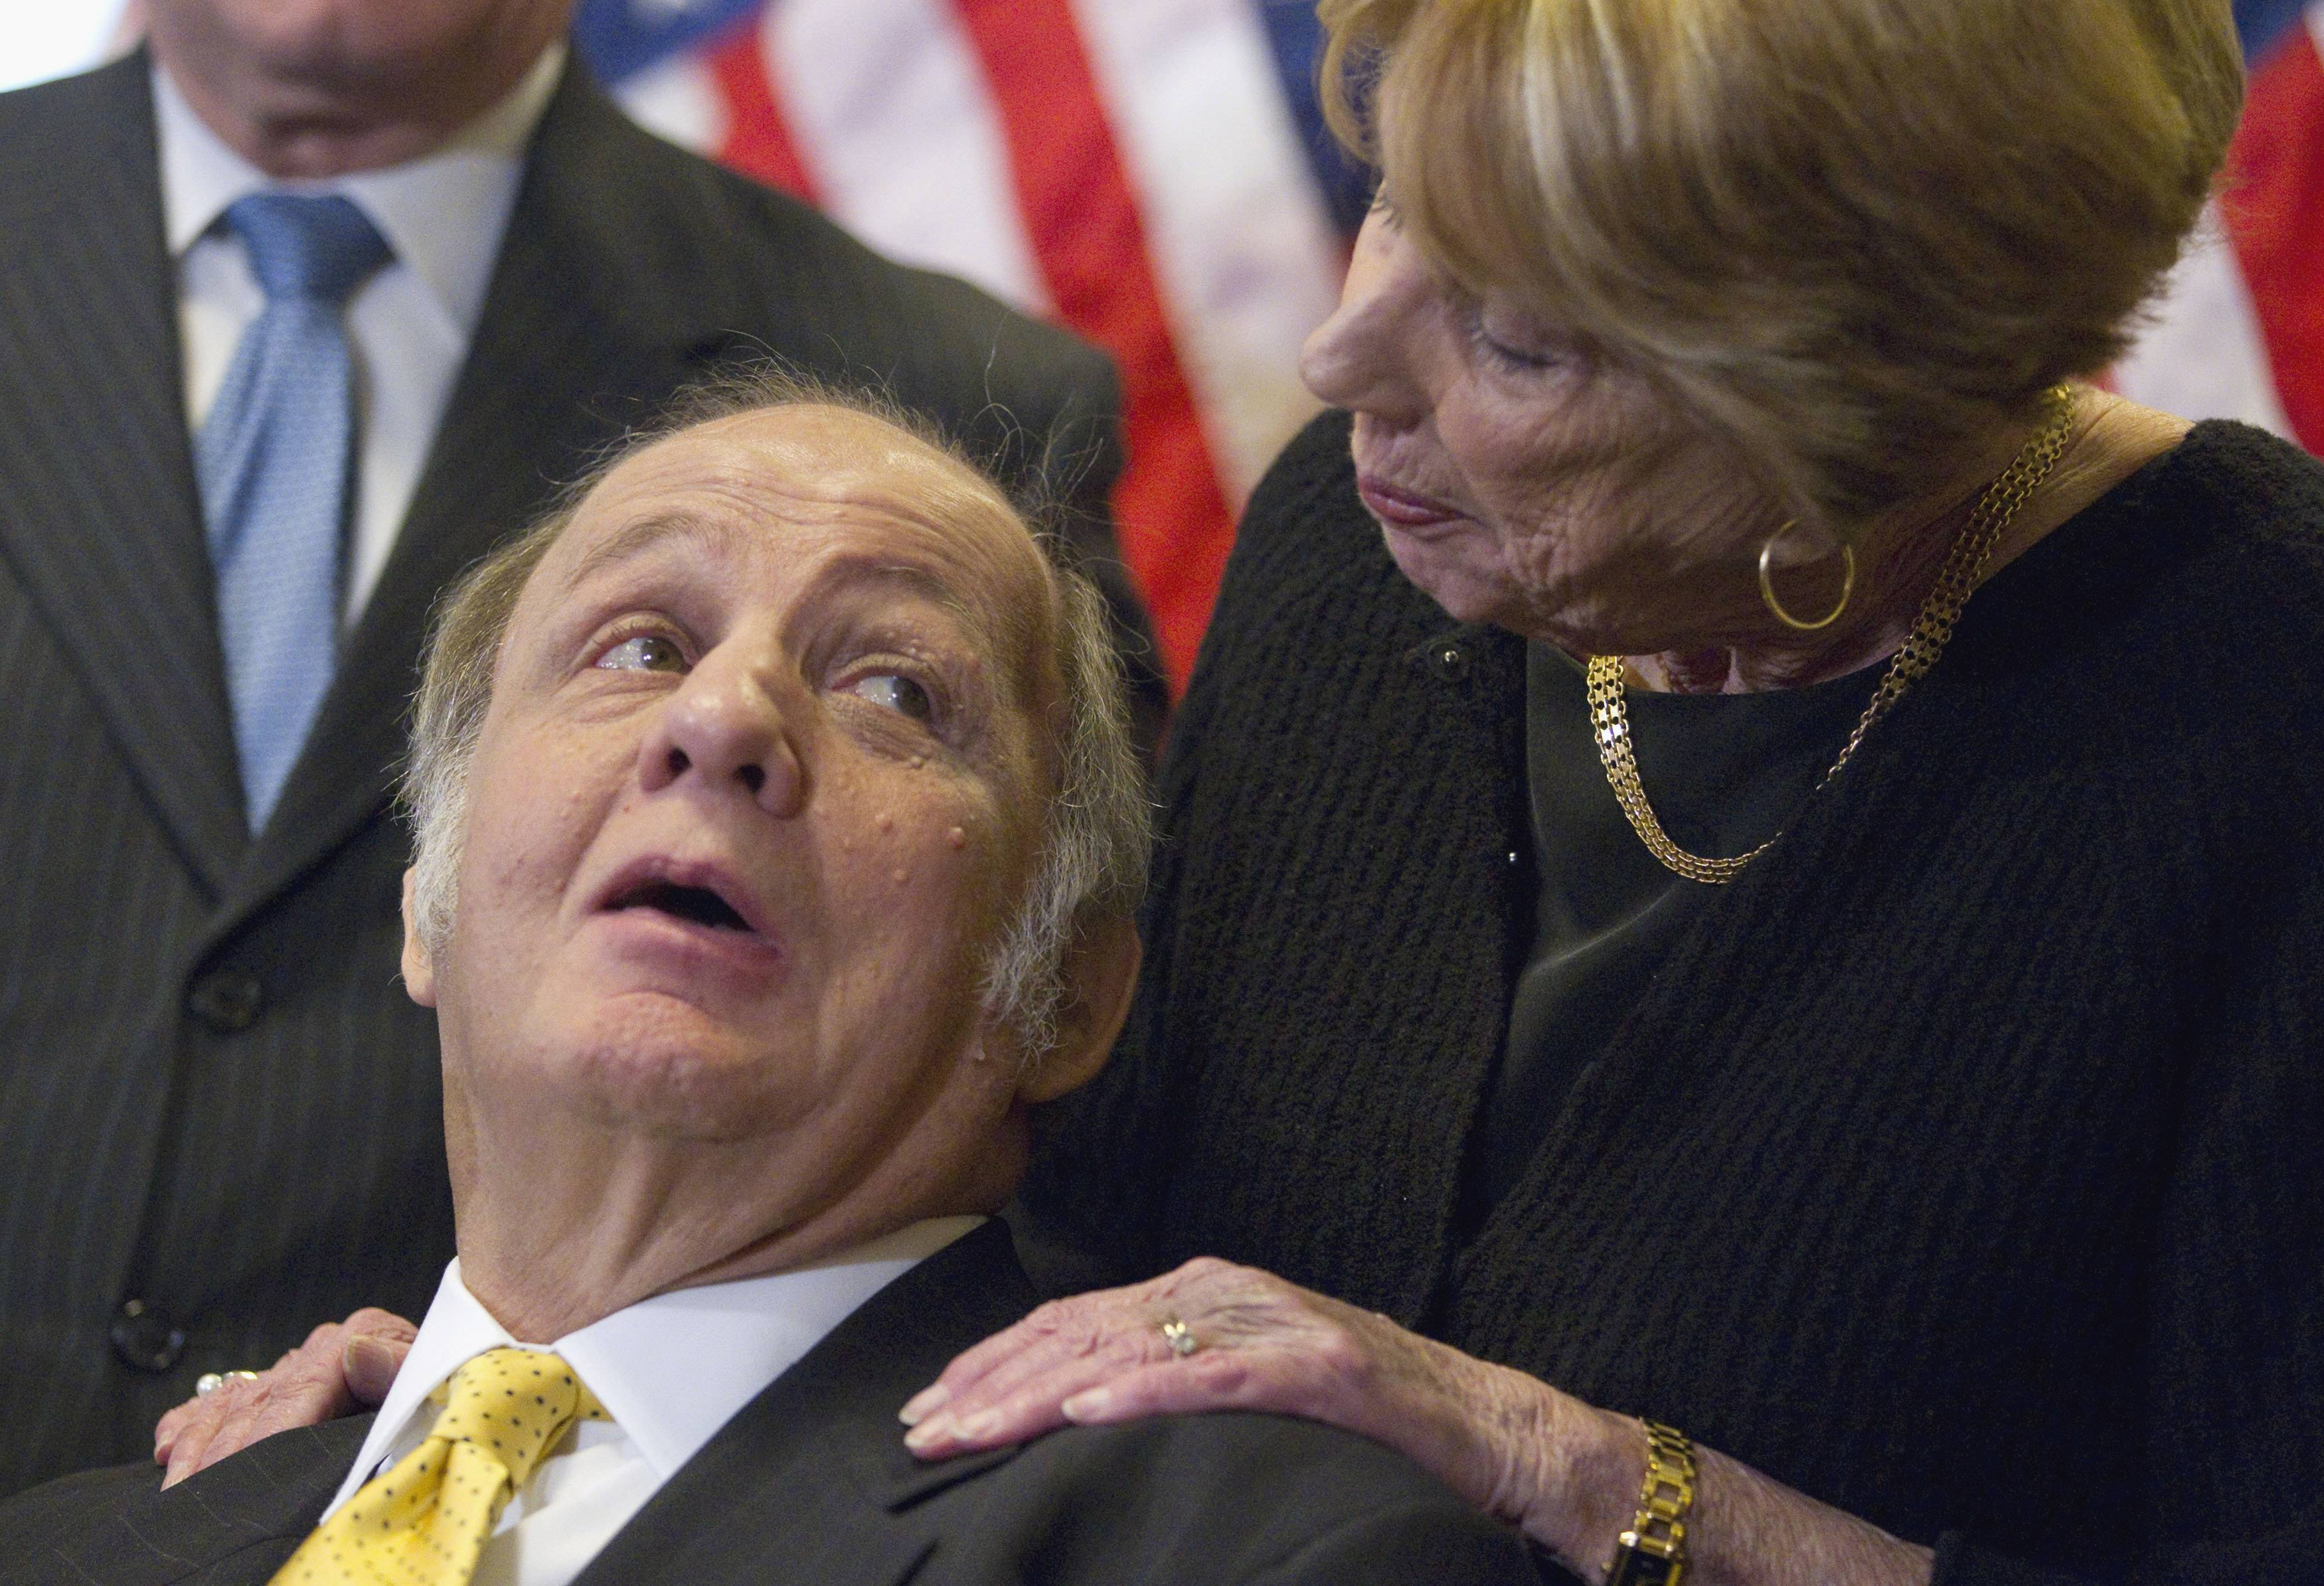 Former White House Press Secretary James Brady, who was left paralyzed in the Reagan assassination attempt, looks at his wife, Sarah, during a news conference on Capitol Hill in Washington marking the 30th anniversary of the shooting. A Brady family spokeswoman says Brady has died at 73.